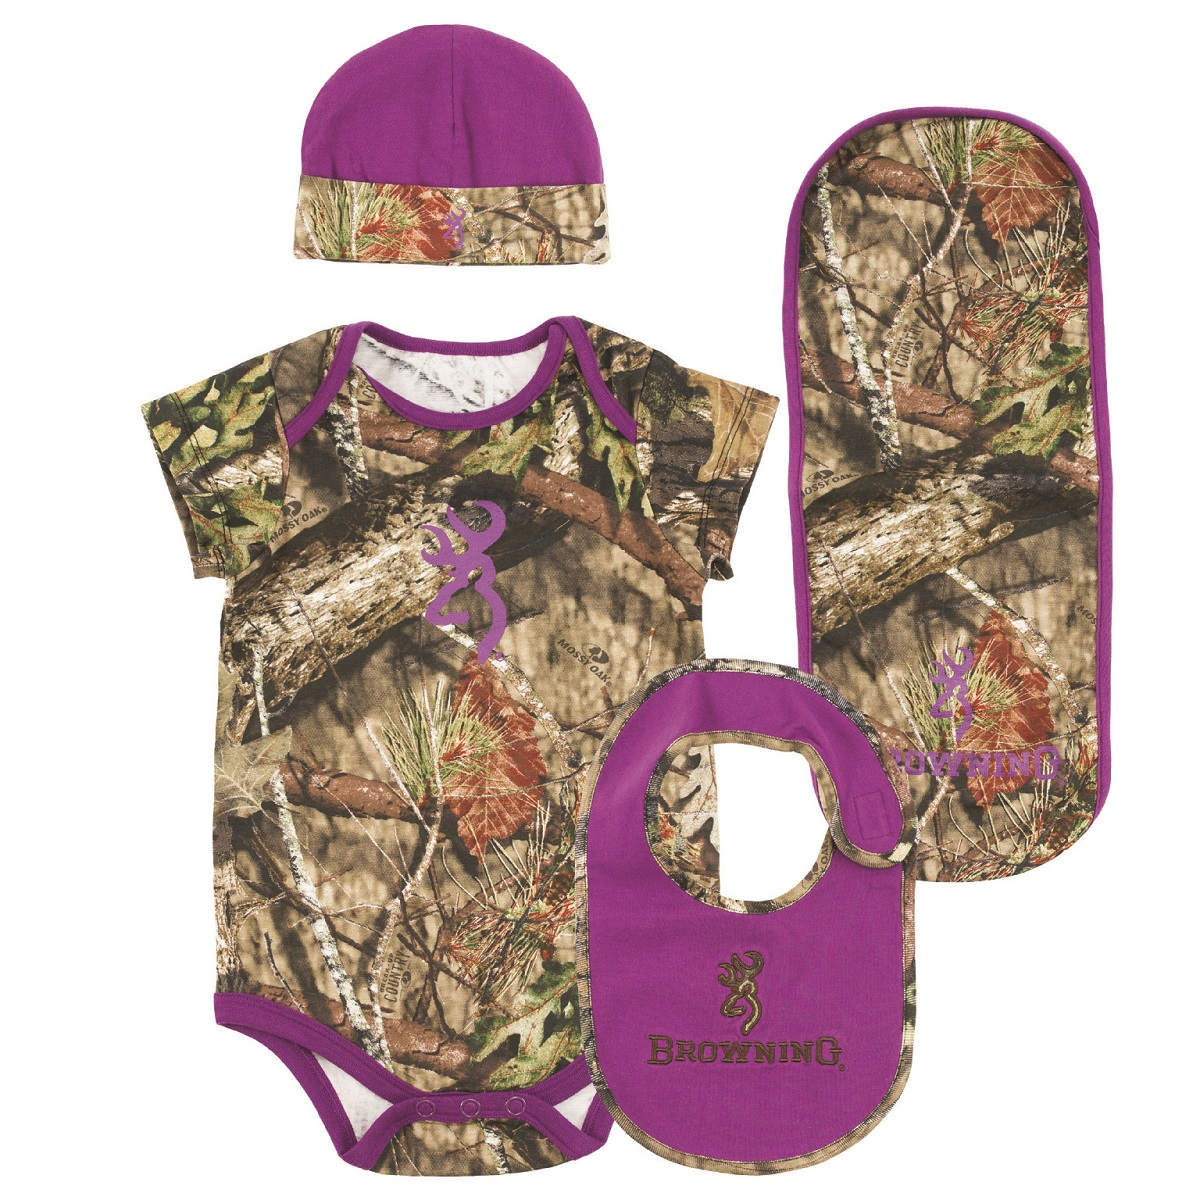 Browning Baby Girl Camo Purple Infant Clothes Set